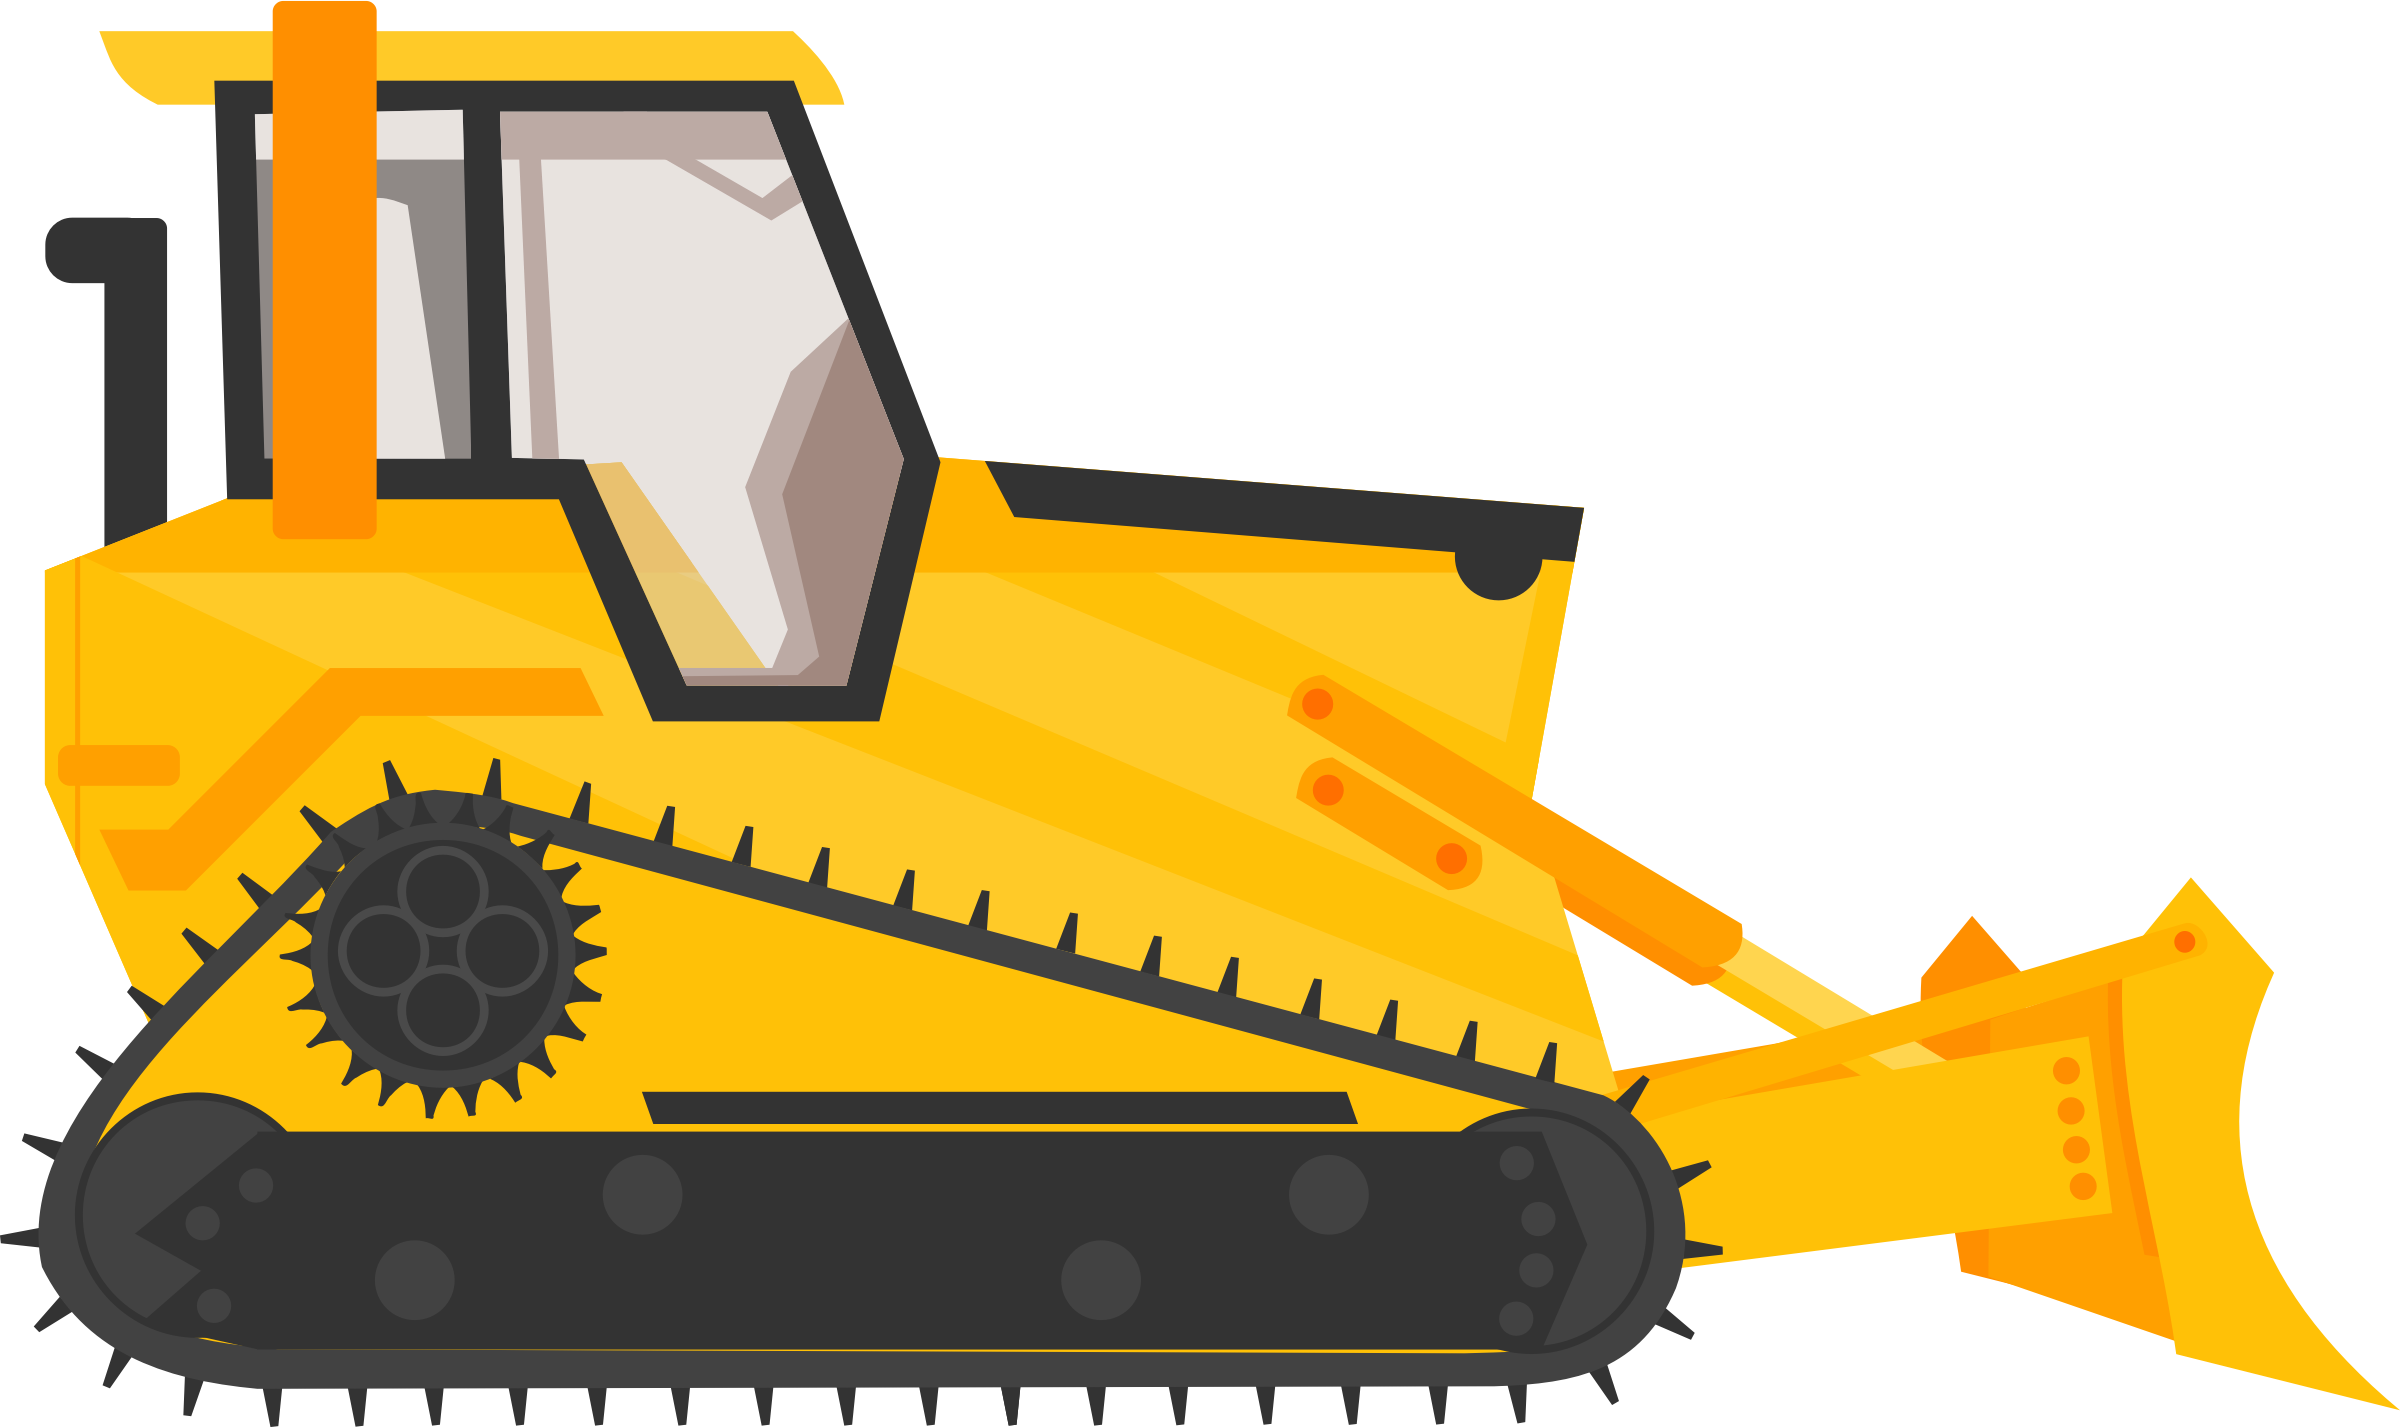 Bulldozer icons png free. Backhoe clipart back hoe